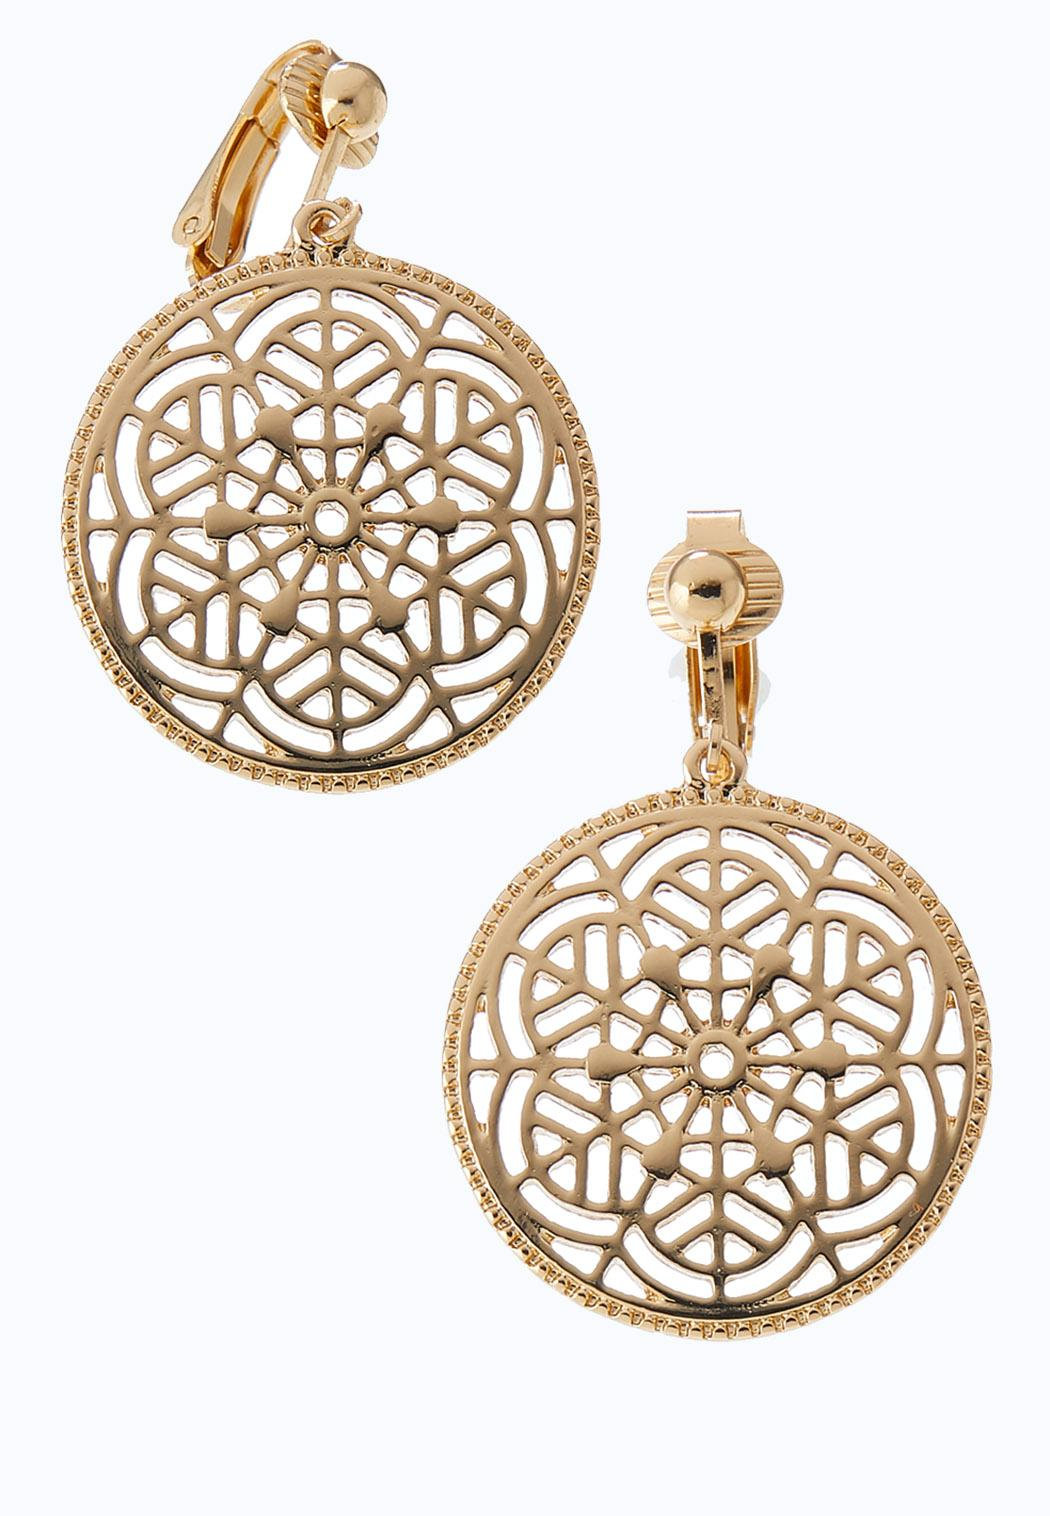 Filigree Clip-On Earrings